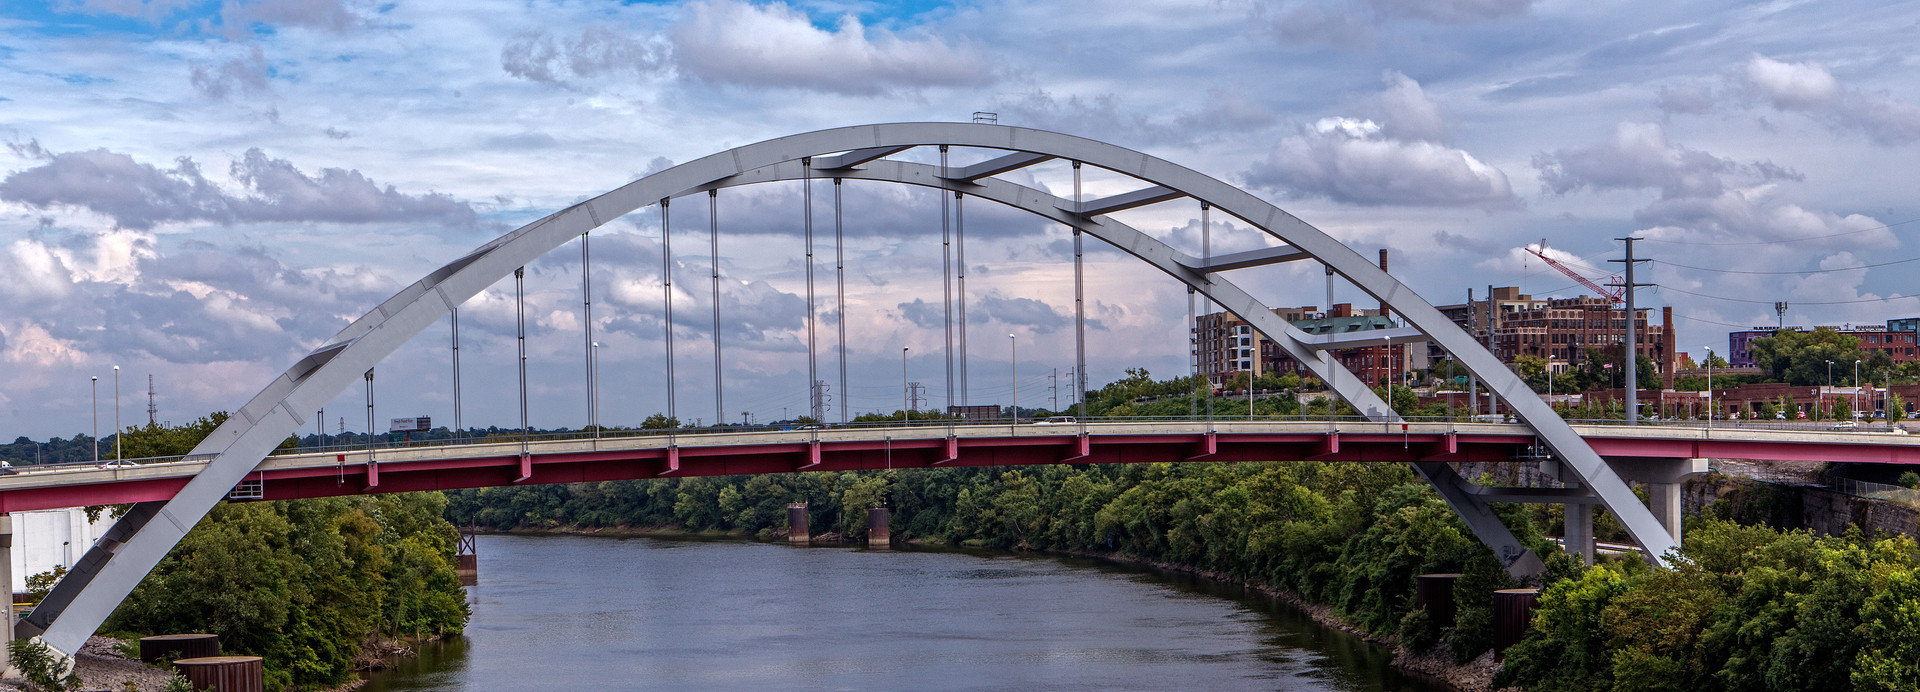 Downtown-Bridge-001.jpg